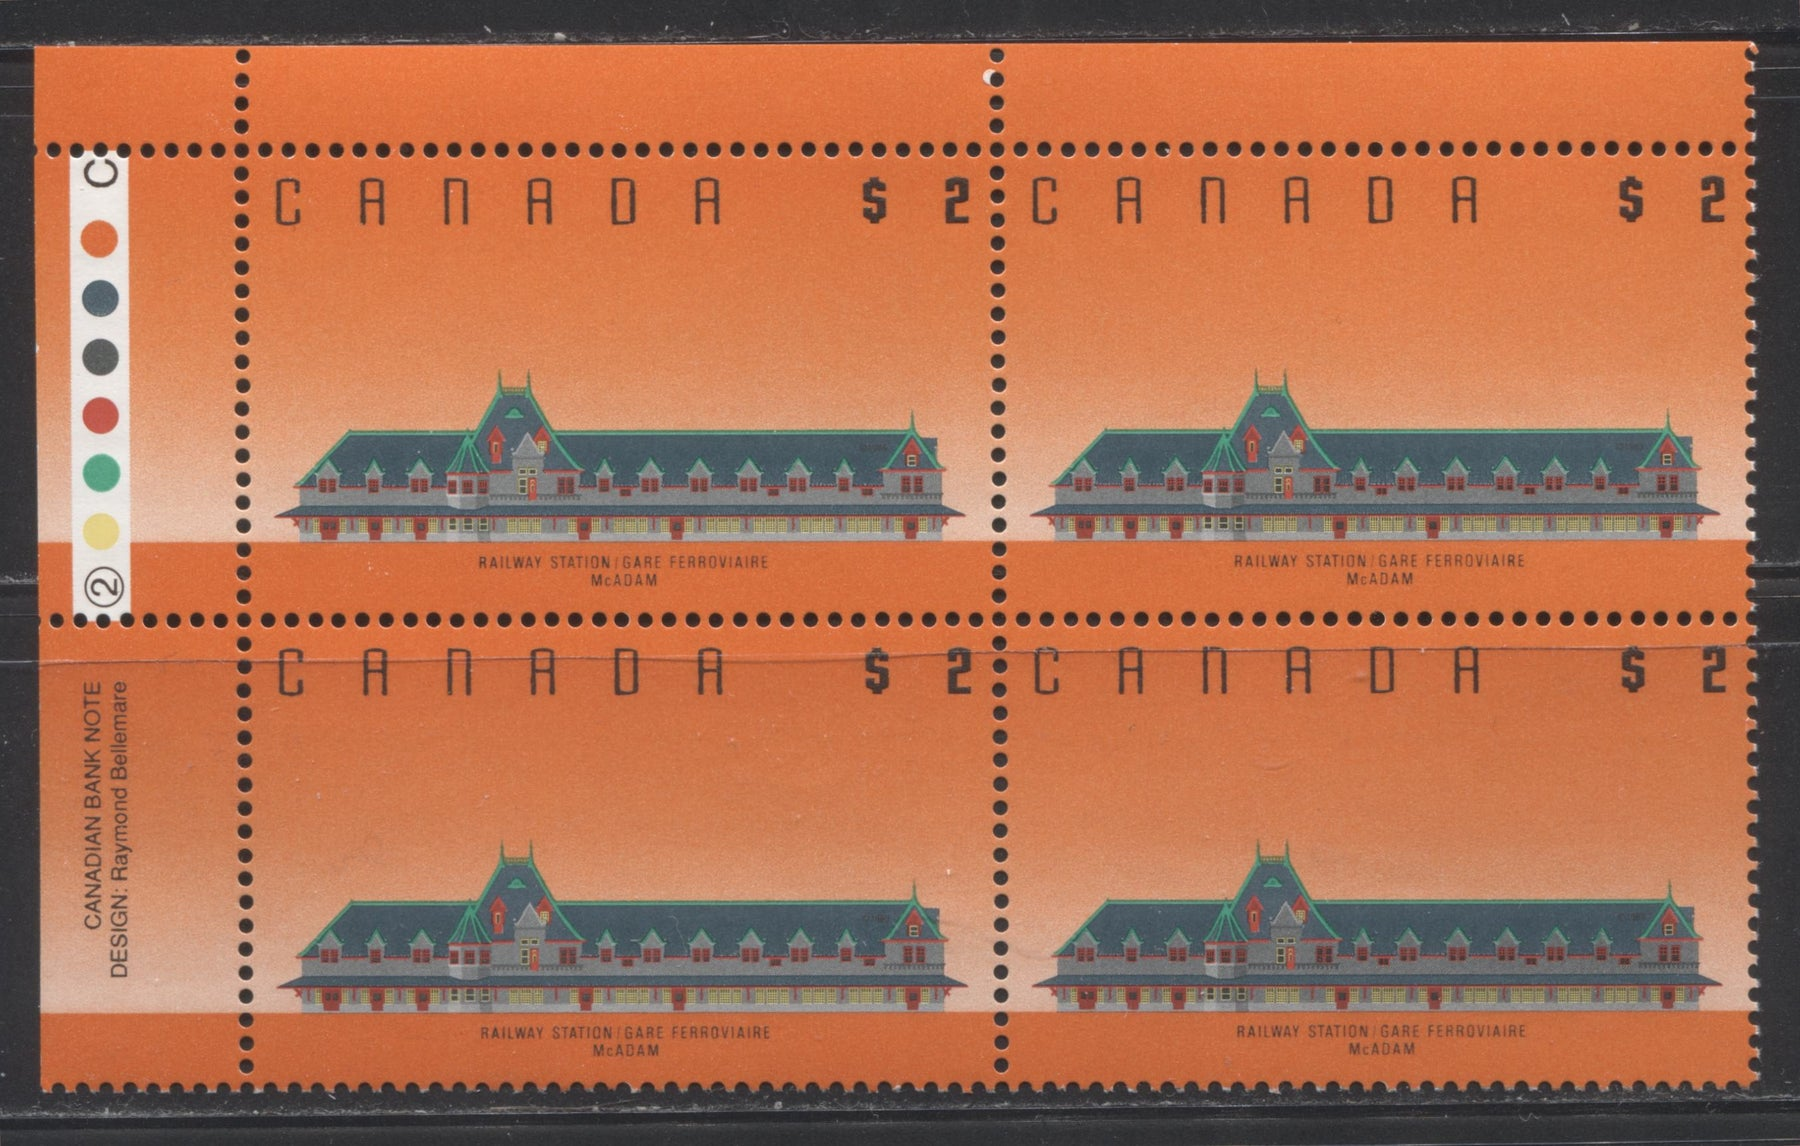 Canada #1182iii $2 McAdam Railway Station 1988-1991 Wildlife and Architecture Issue, a VFNH UL Plate 2 Block on DF/NF Coated Papers Paper